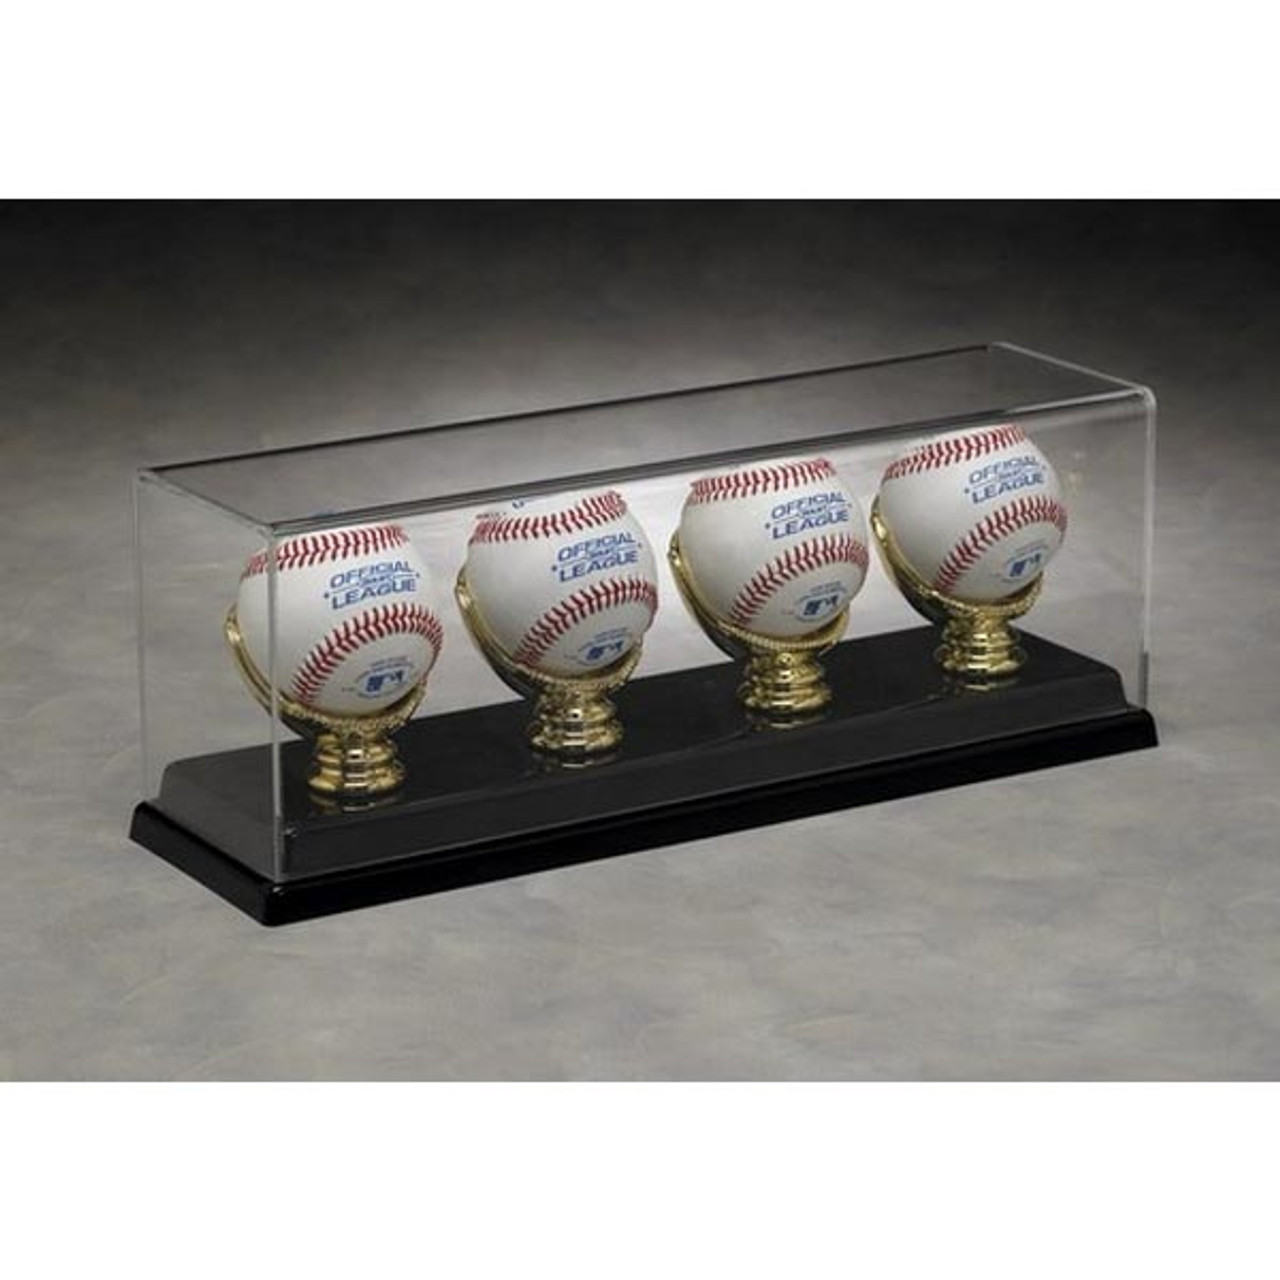 4 Baseball Display Case With Golden Glove Ball Holders Nikco